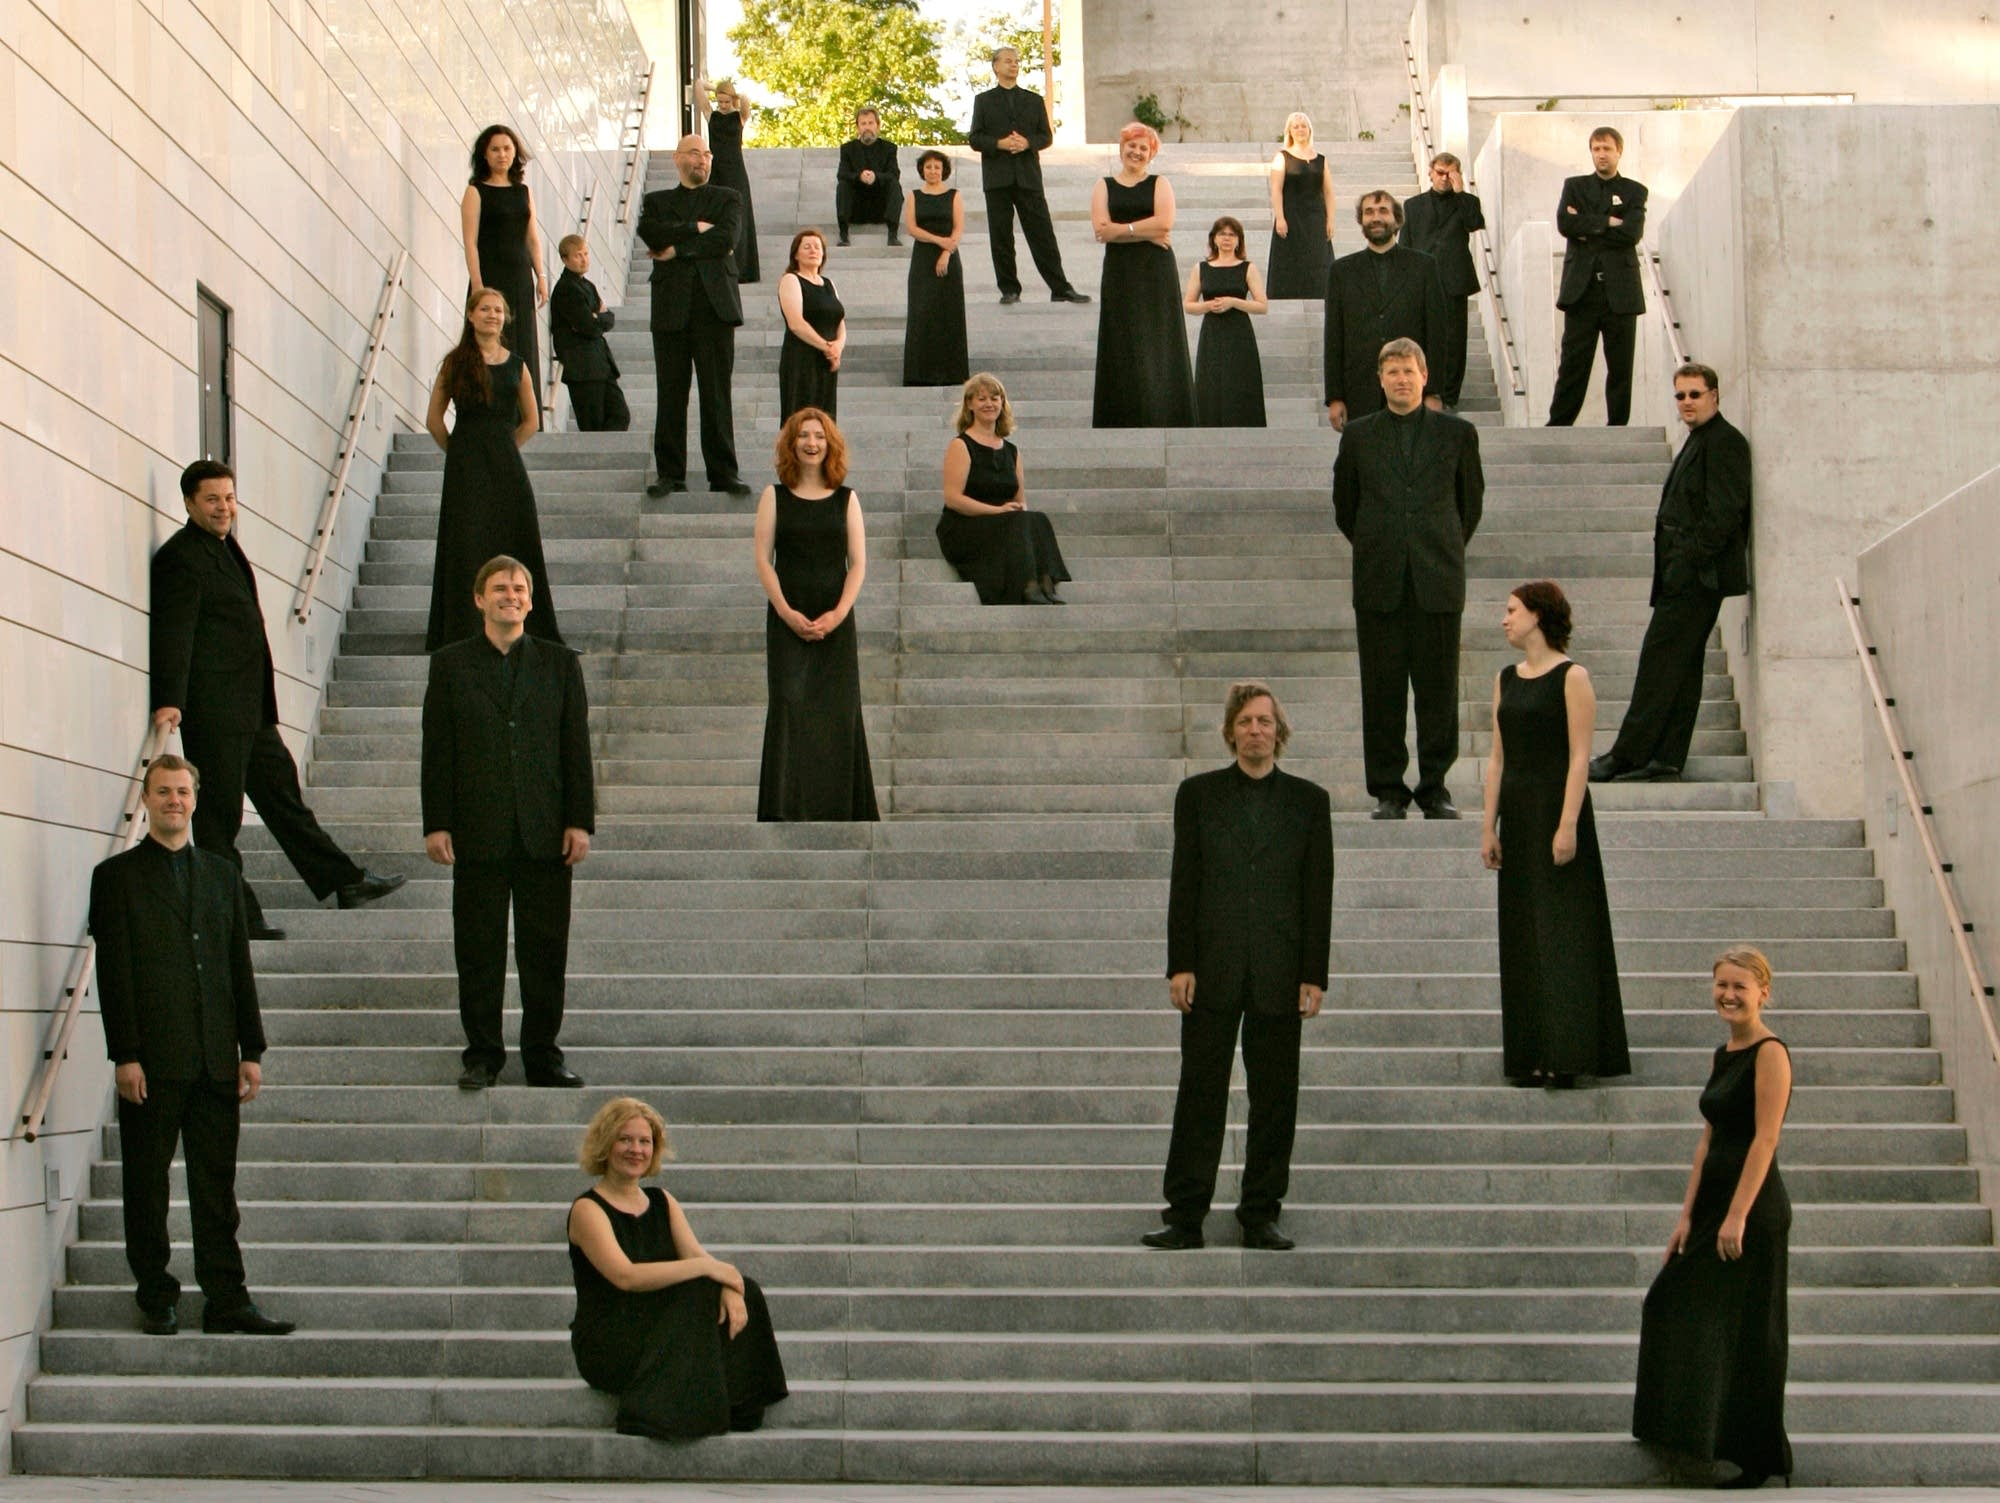 Estonian Philharmonic Chamber Choir, stairs, up